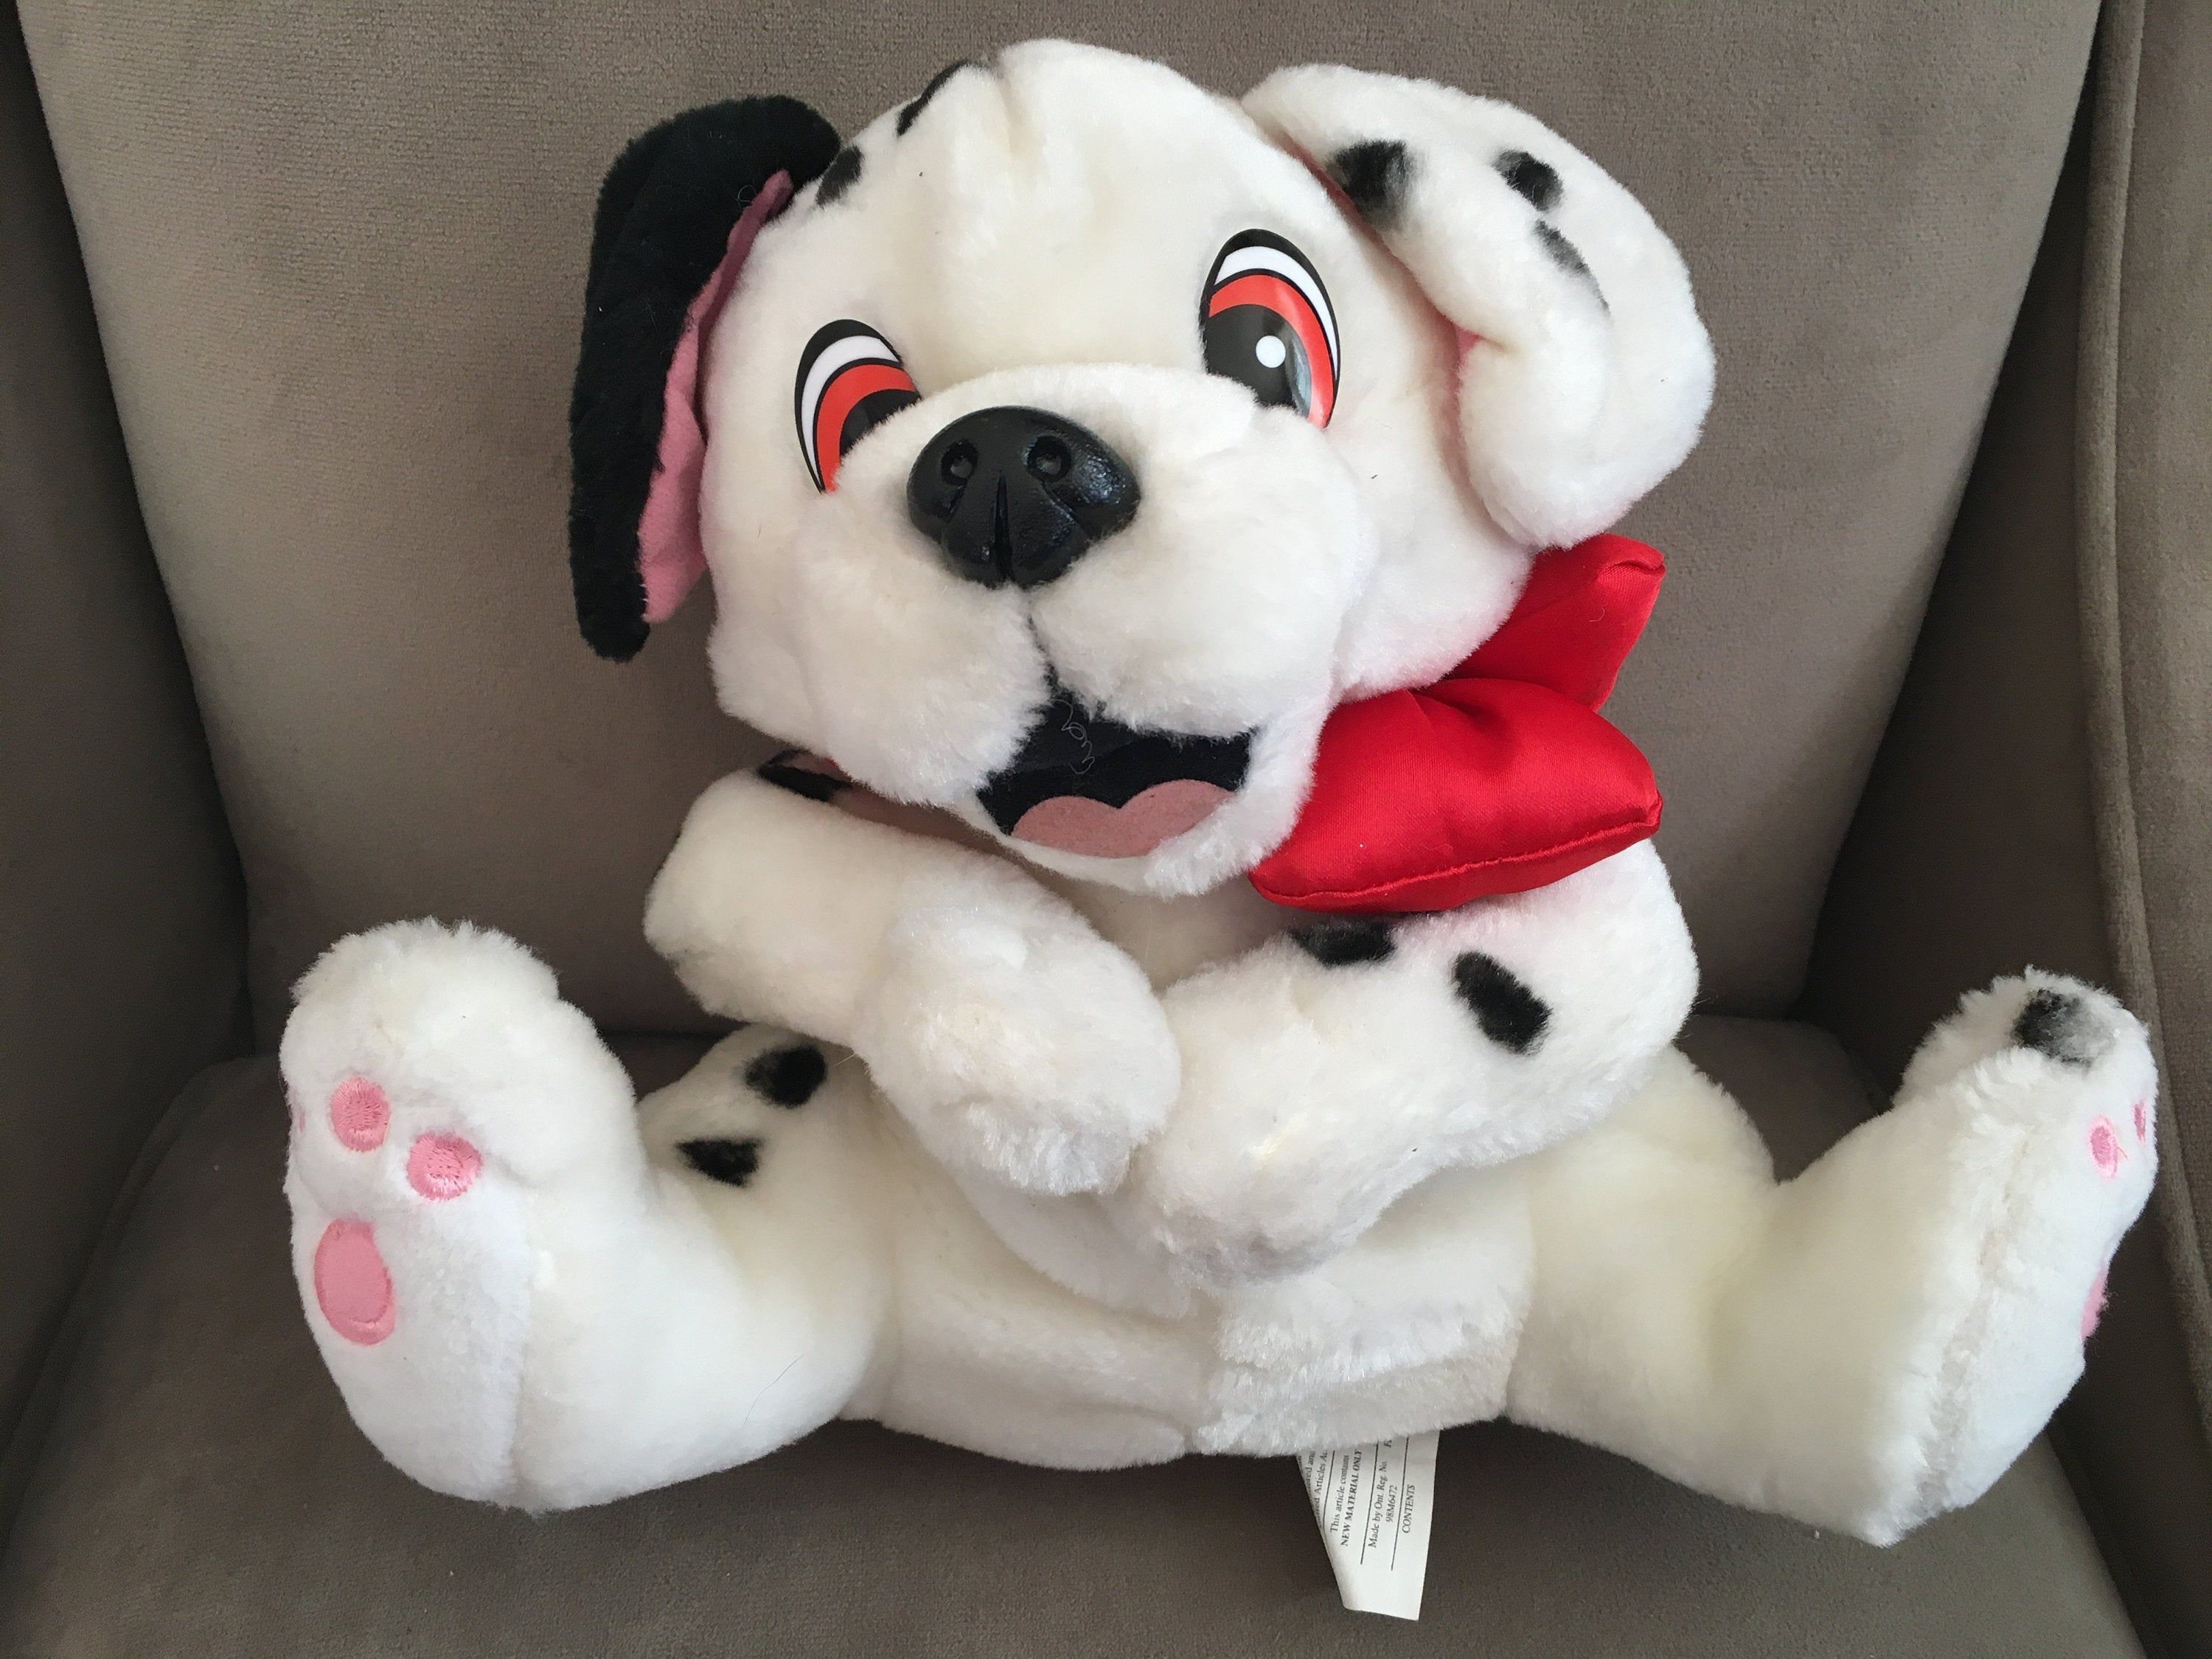 101 Dalmatians Reversible Plush Puppy Dog Present Gift 2 In 1 Stuffed Animal Dog Presents Monkey Stuffed Animal Dogs And Puppies [ 2250 x 3000 Pixel ]